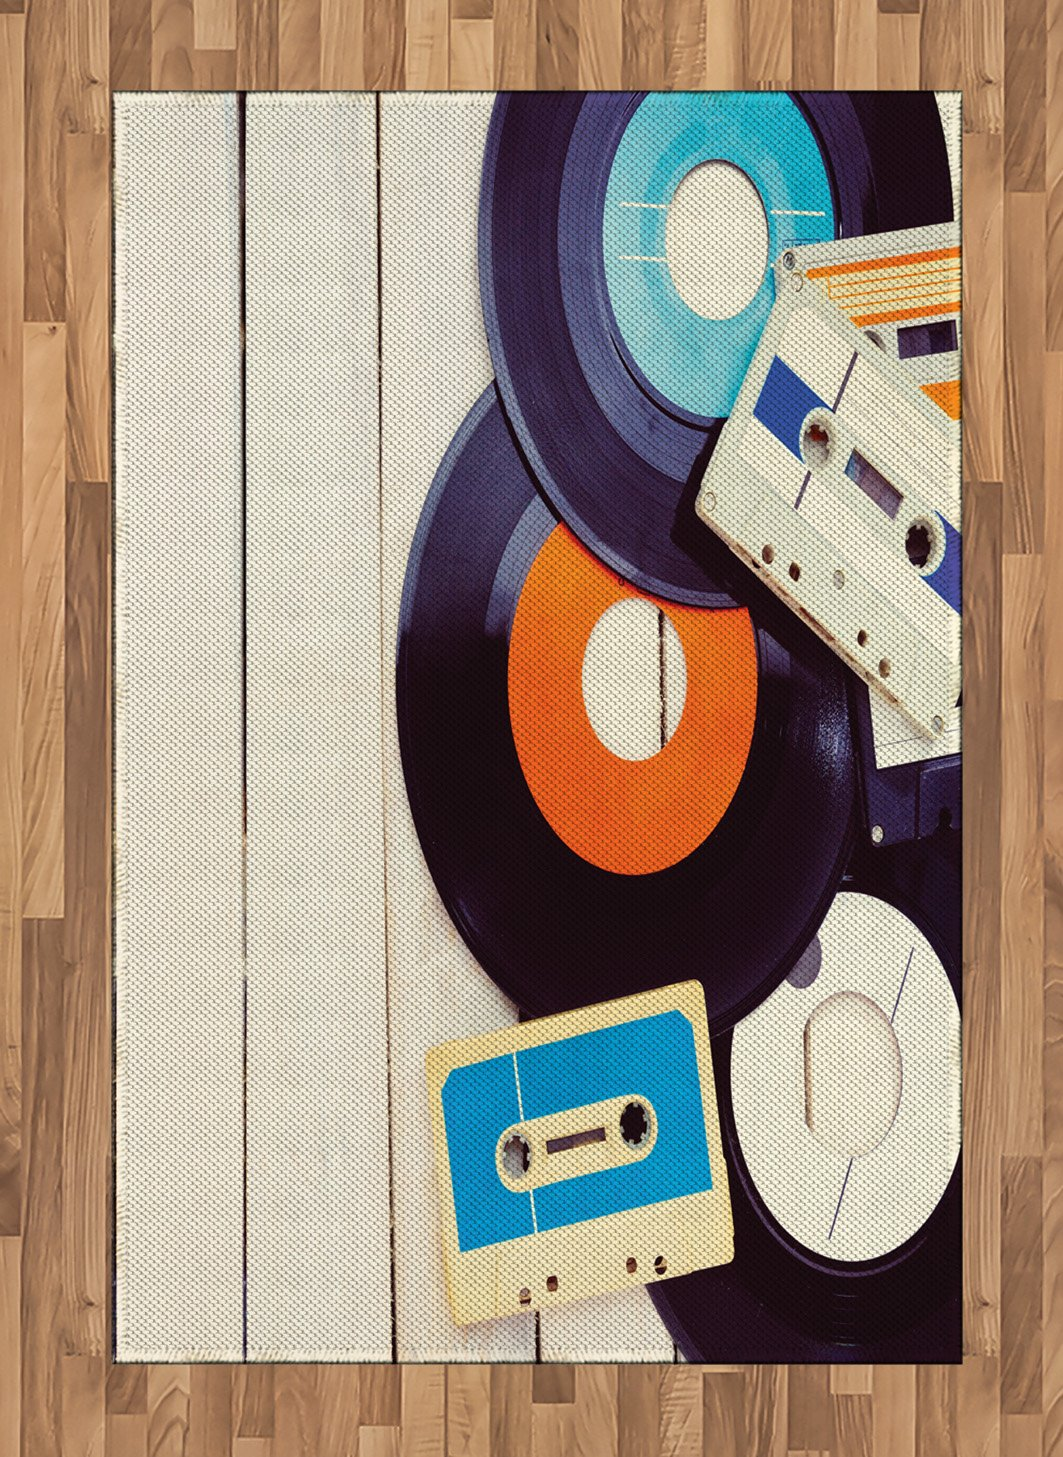 Ambesonne Indie Area Rug, Gramophone Records and Old Audio Cassettes on Wooden Table Nostalgia Music, Flat Woven Accent Rug for Living Room Bedroom Dining Room, 4 X 5.7 FT, Blue Orange Black